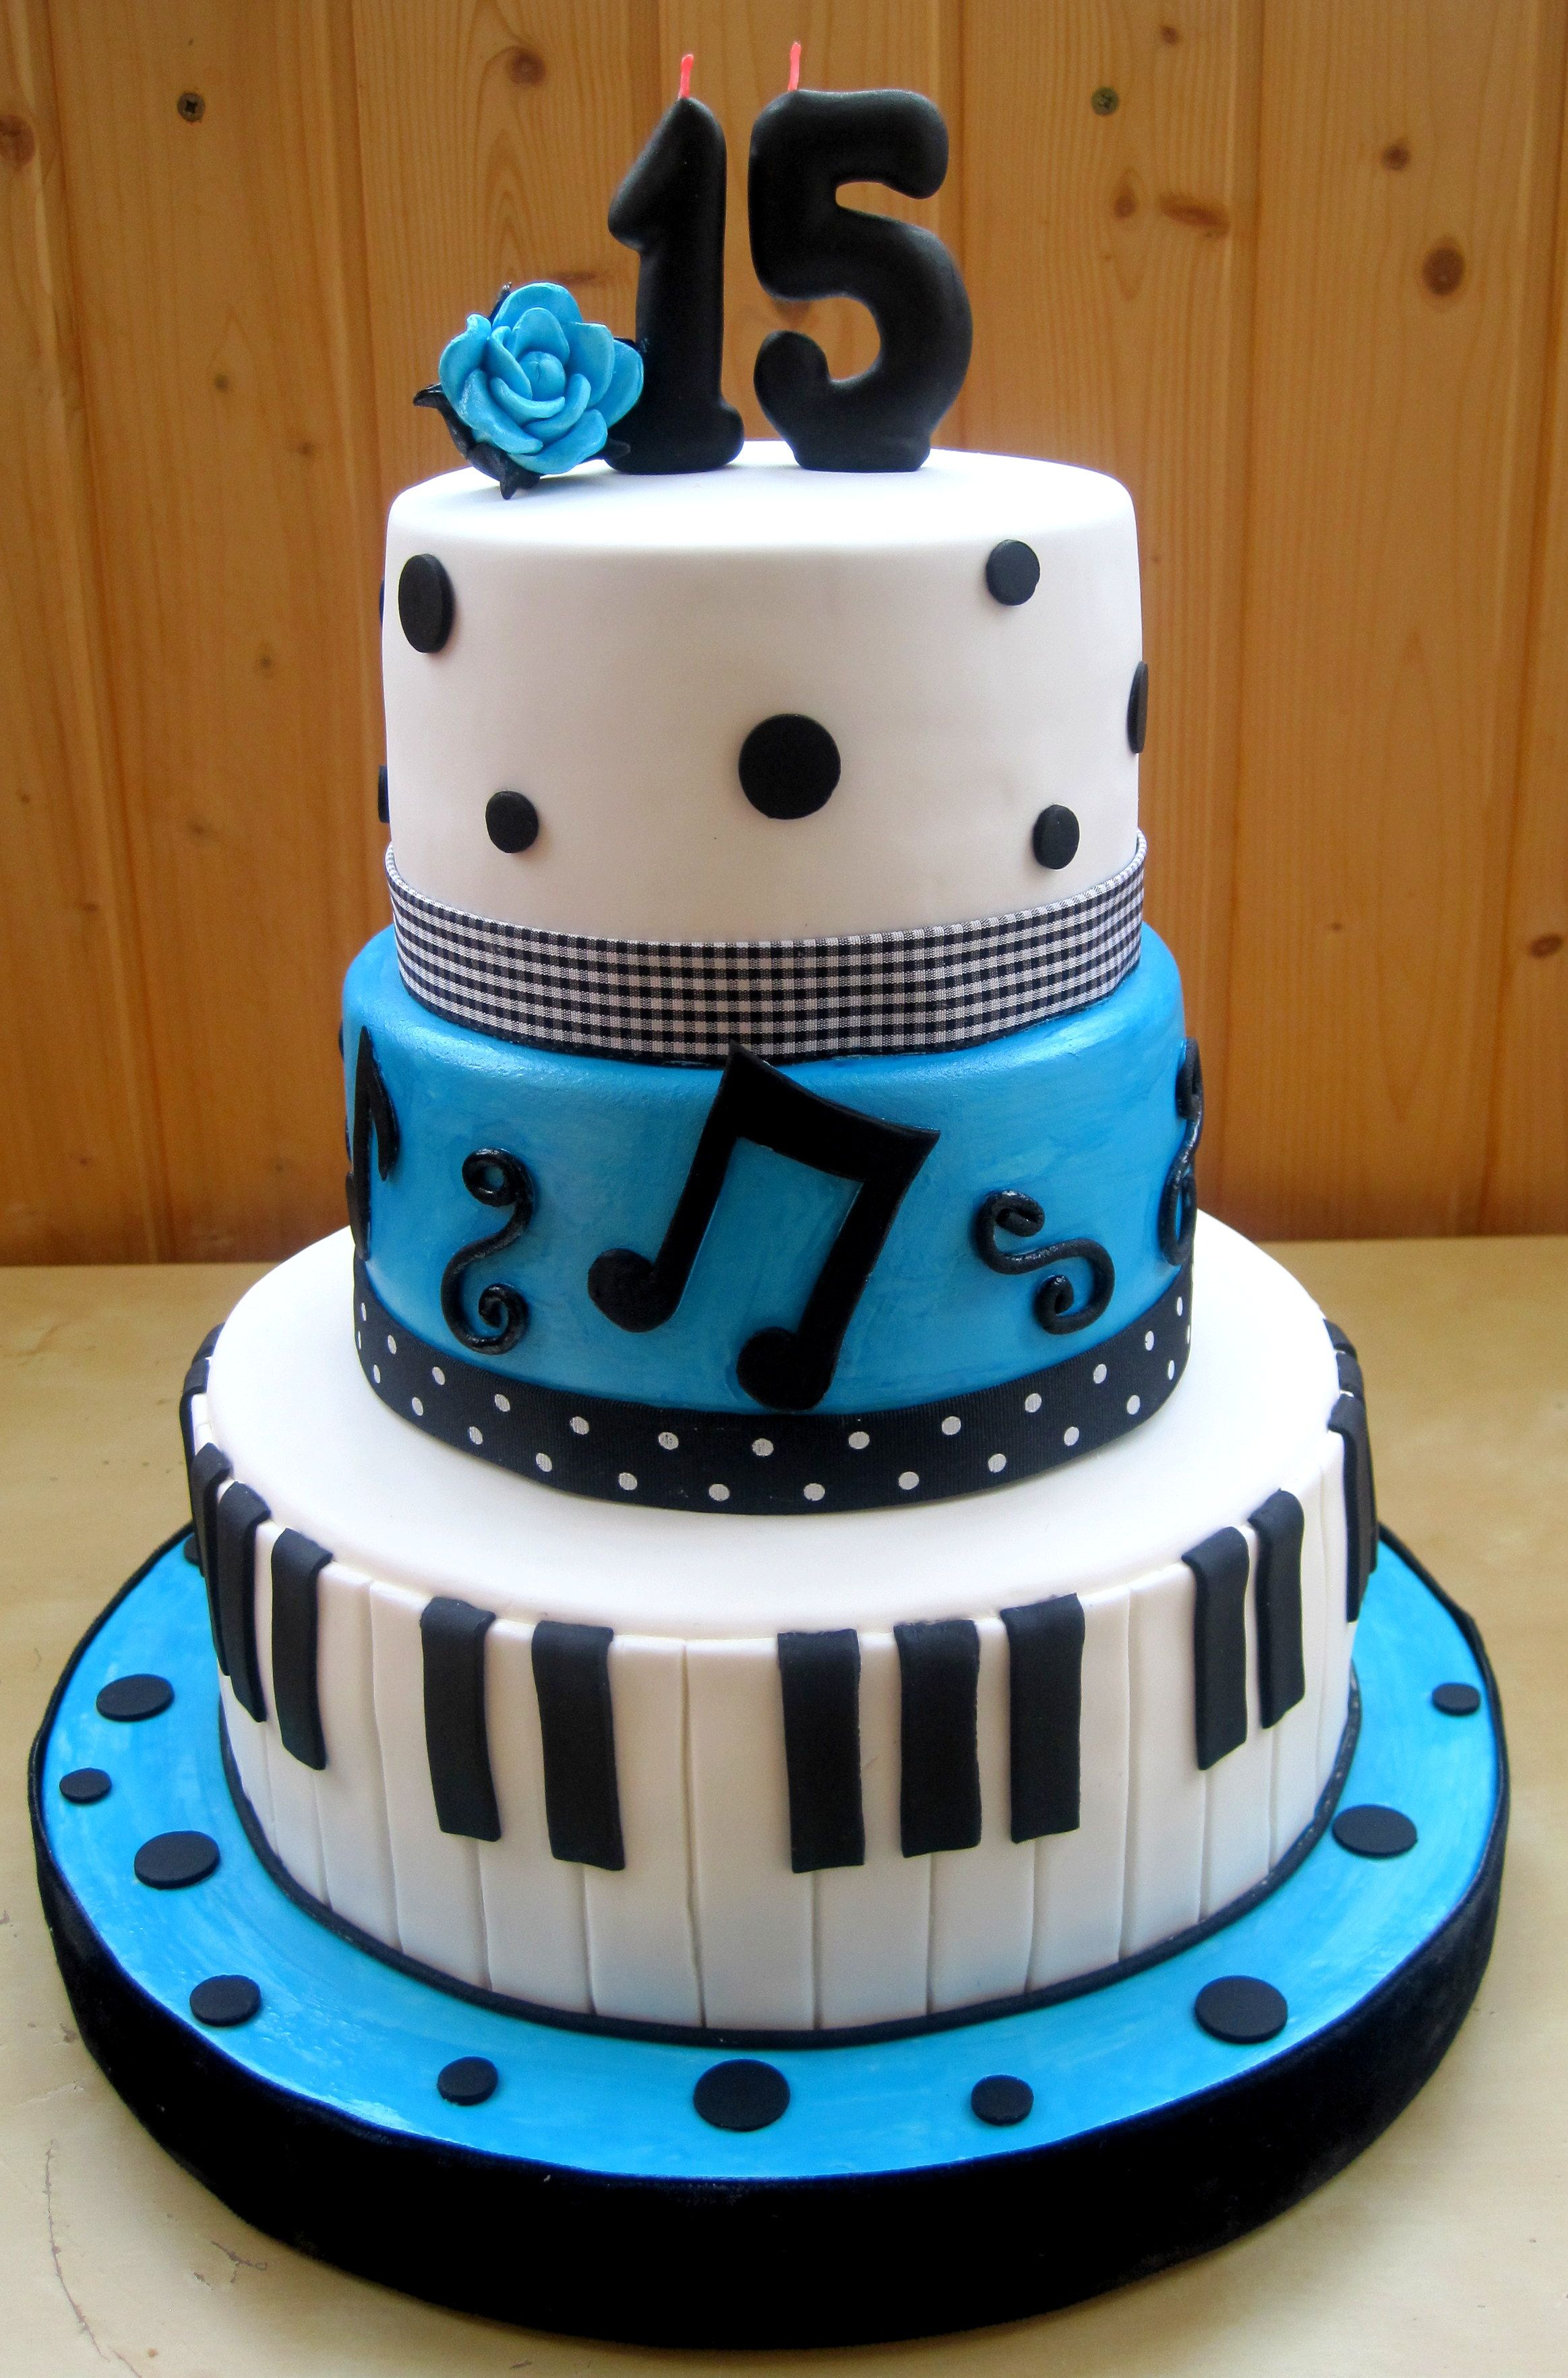 Blue Quinceanera Cake Ideas Pastel And White With Black Polka Dots Music Birthday Cakes15th